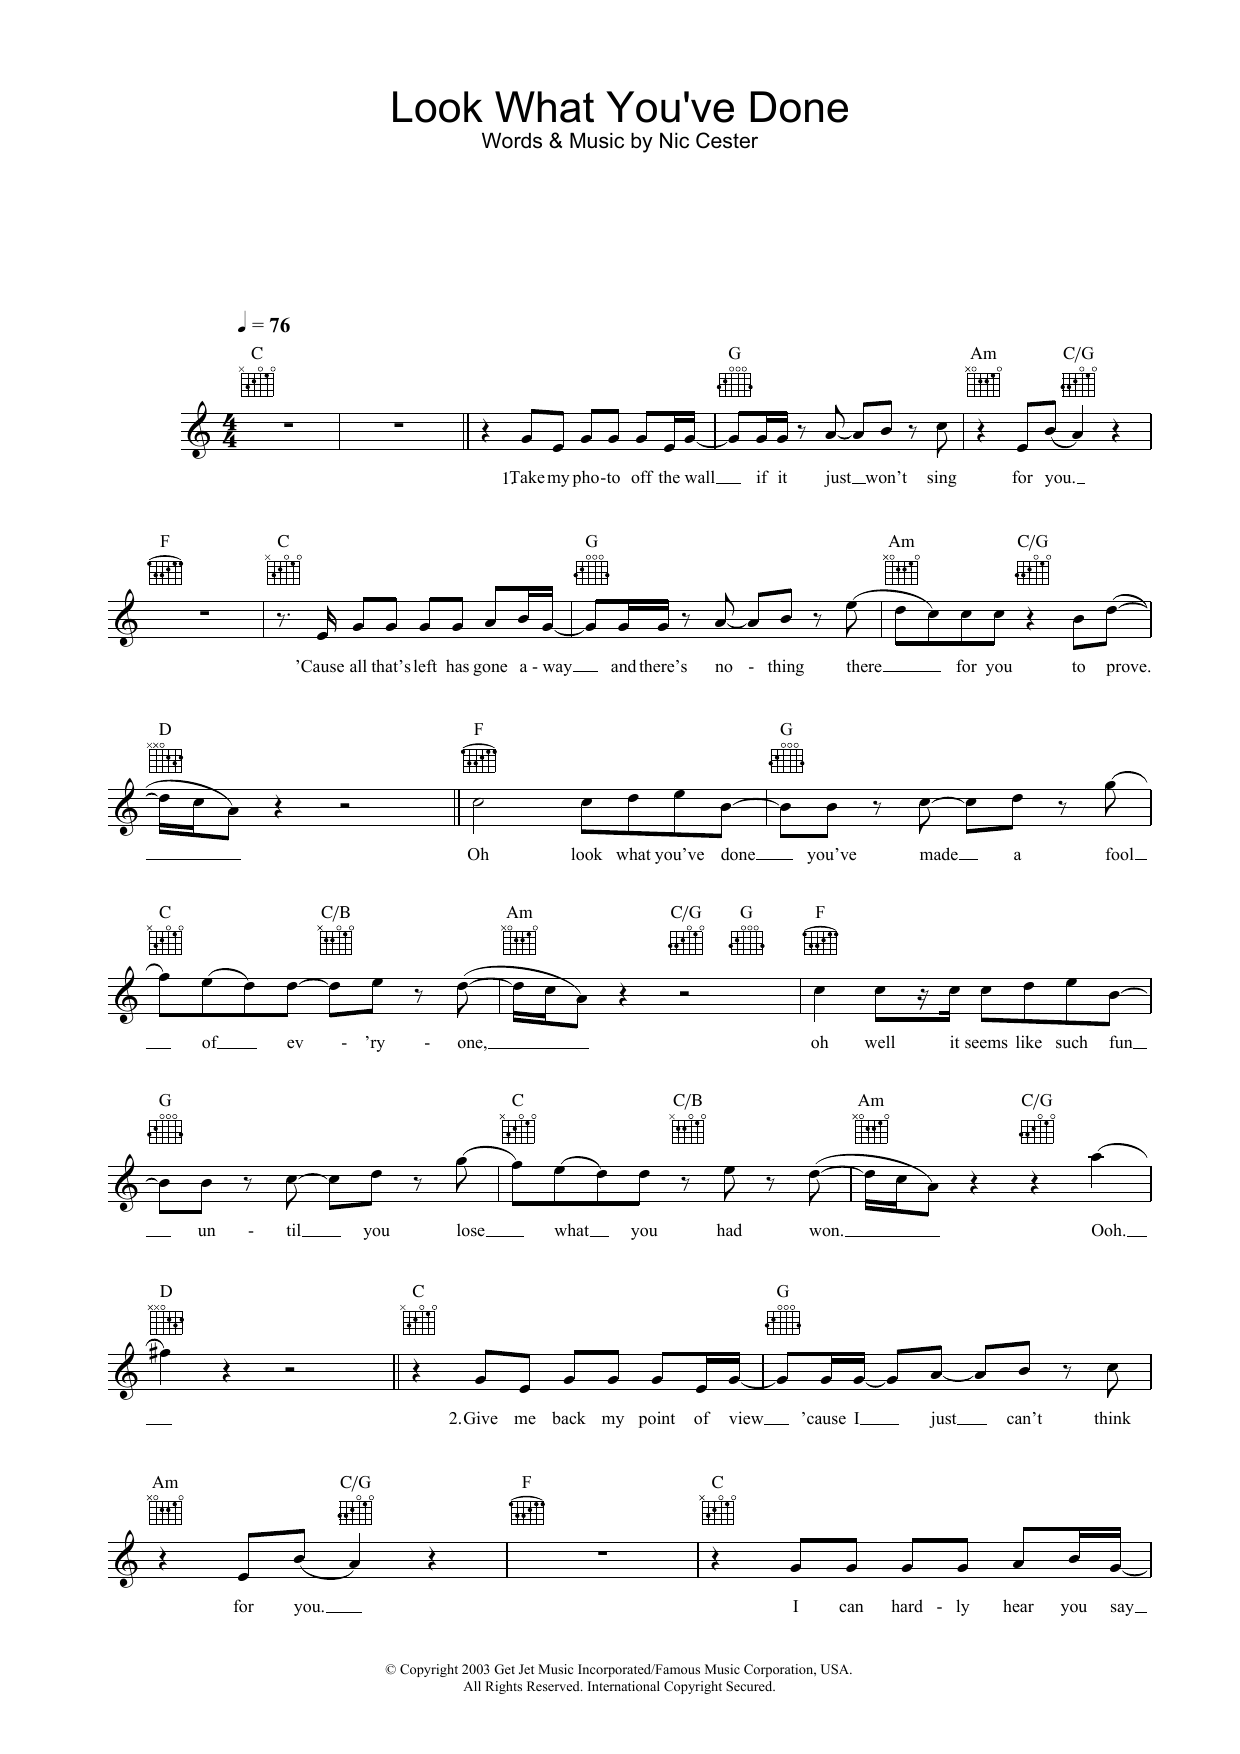 Look What You've Done Sheet Music